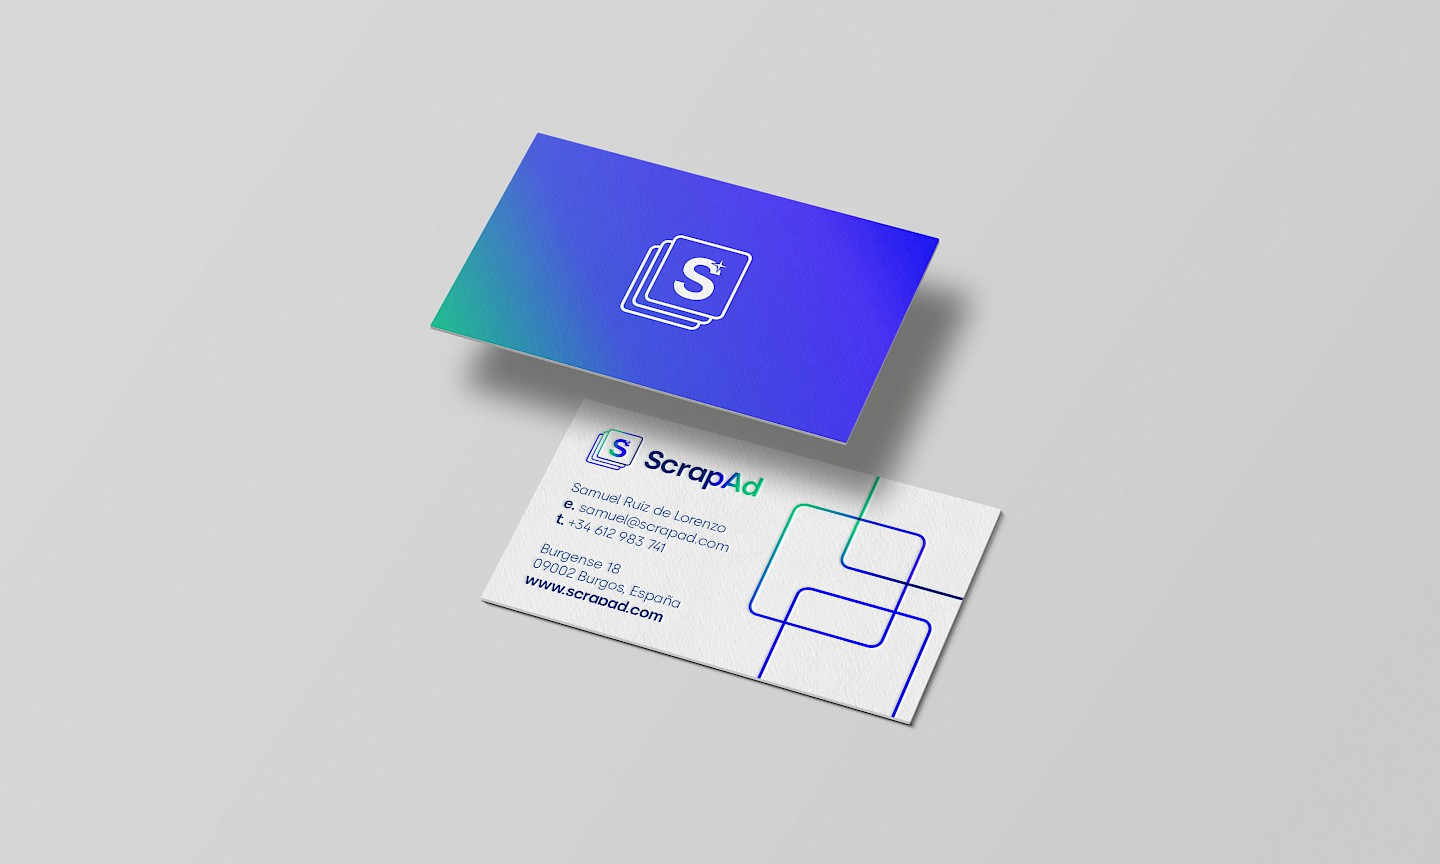 branding slider industrial branding cards business scrapad digital move scrap webapp